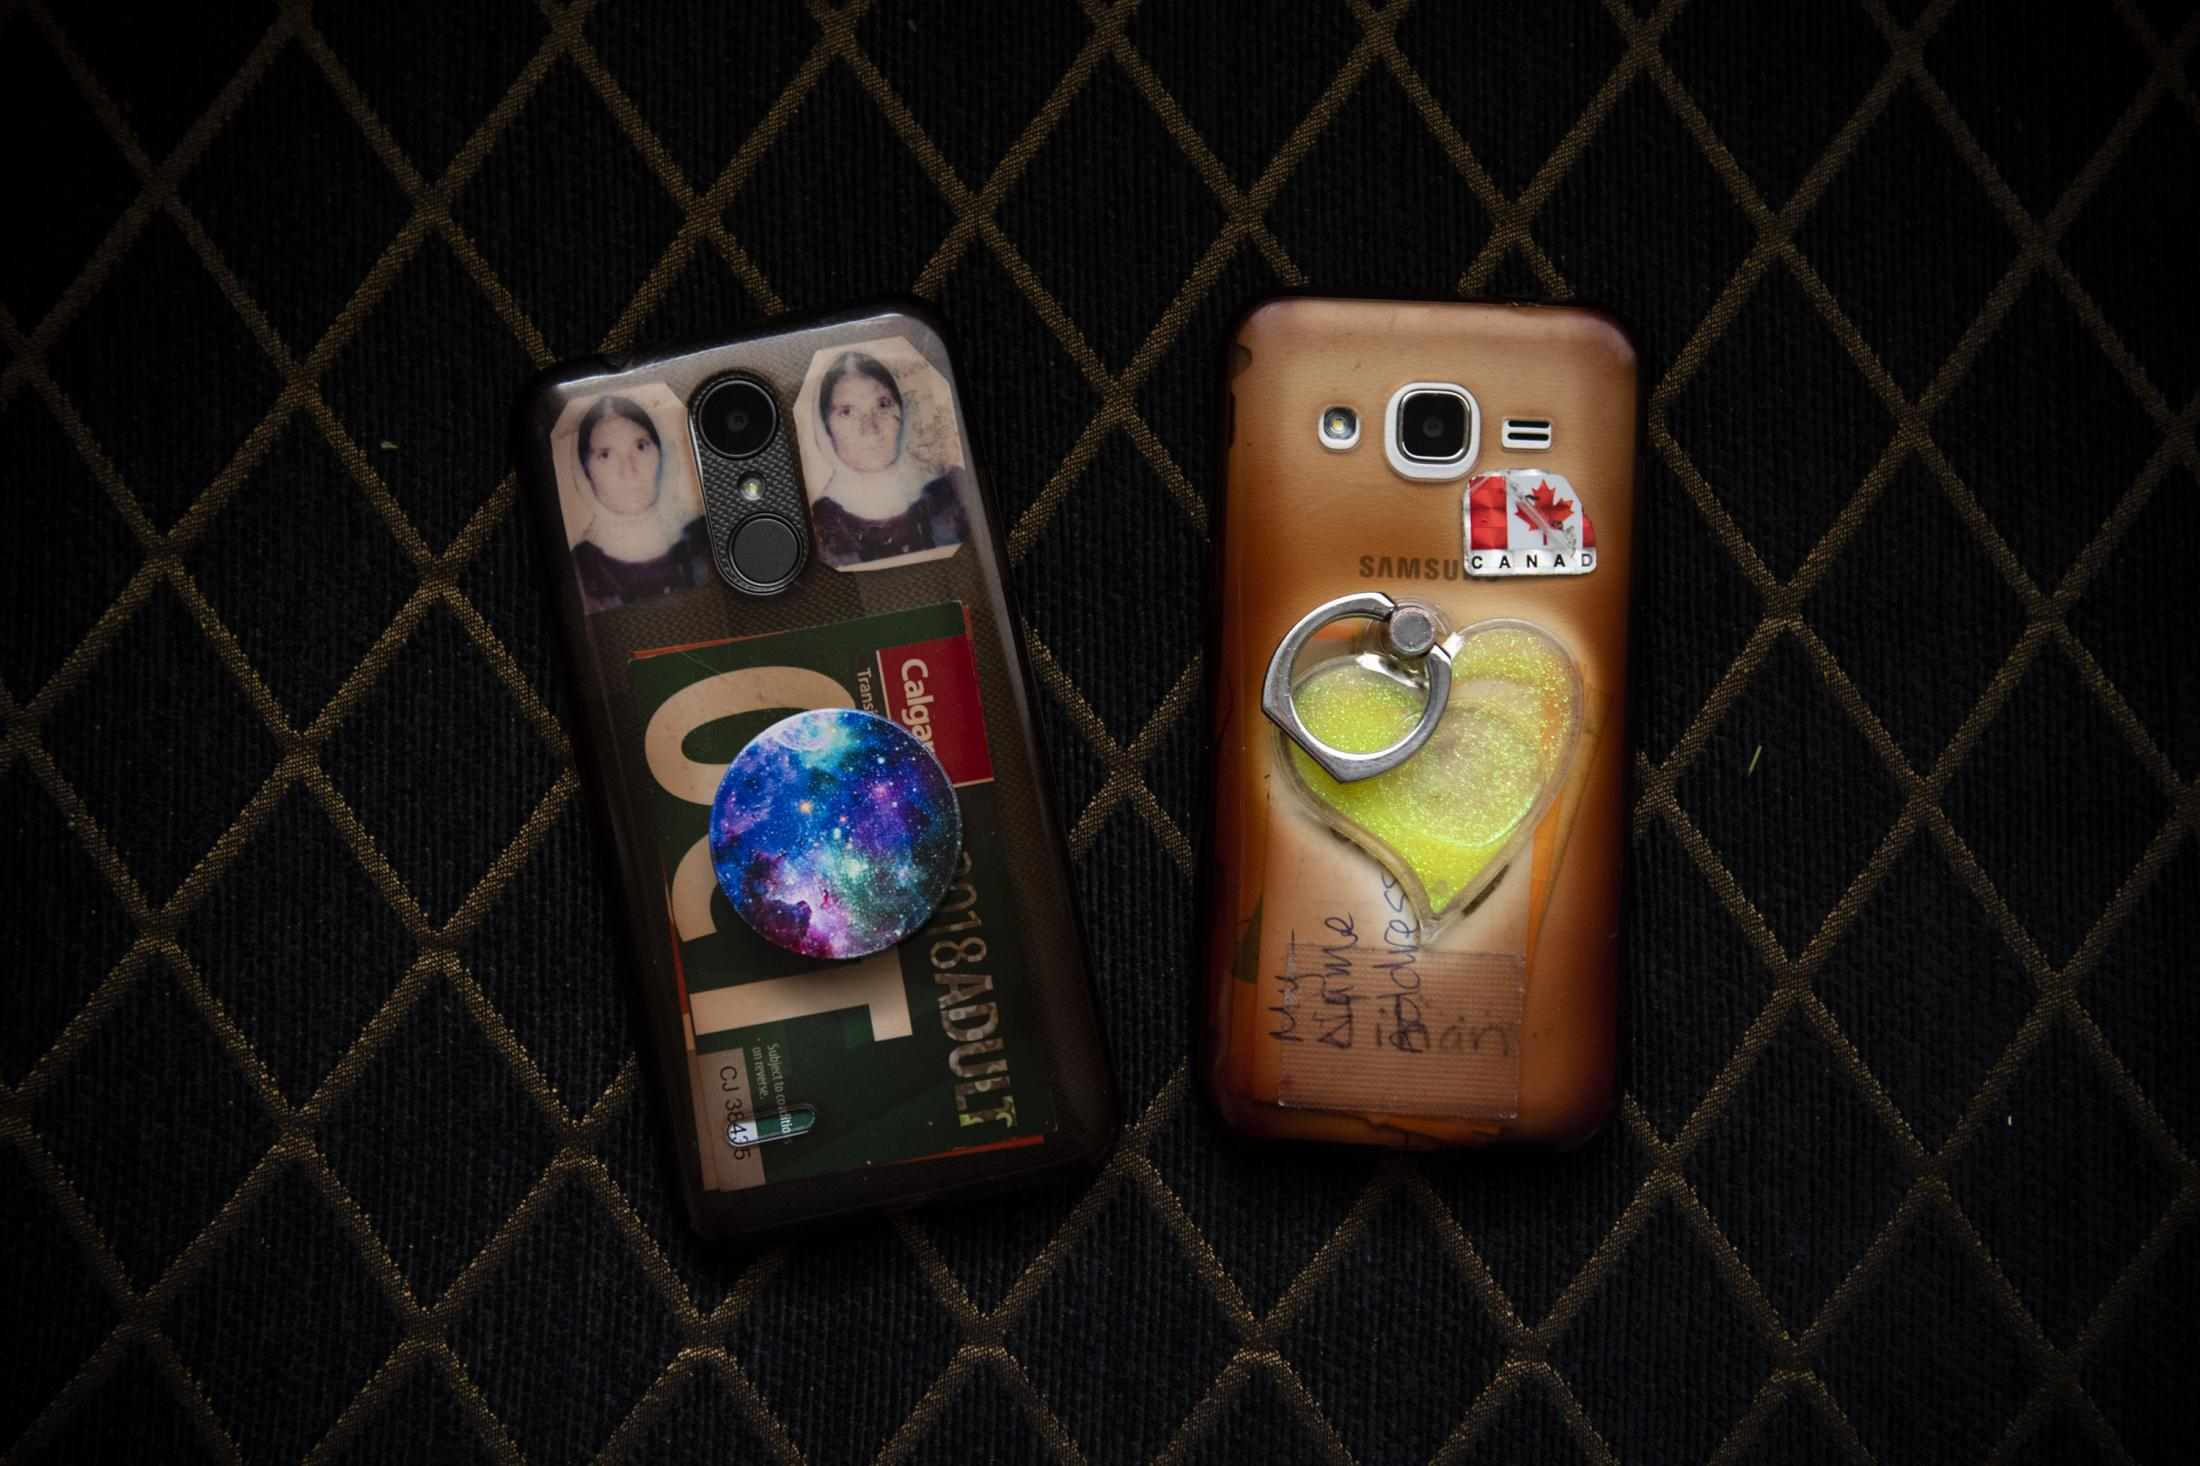 CALGARY | CANADA | 10/19/18 | Jihan's phone on the right with a sticker of Canadian flag and Munifa's phone on the left with two photos of her mother, stuck in between her phone and its transparent protective cover.